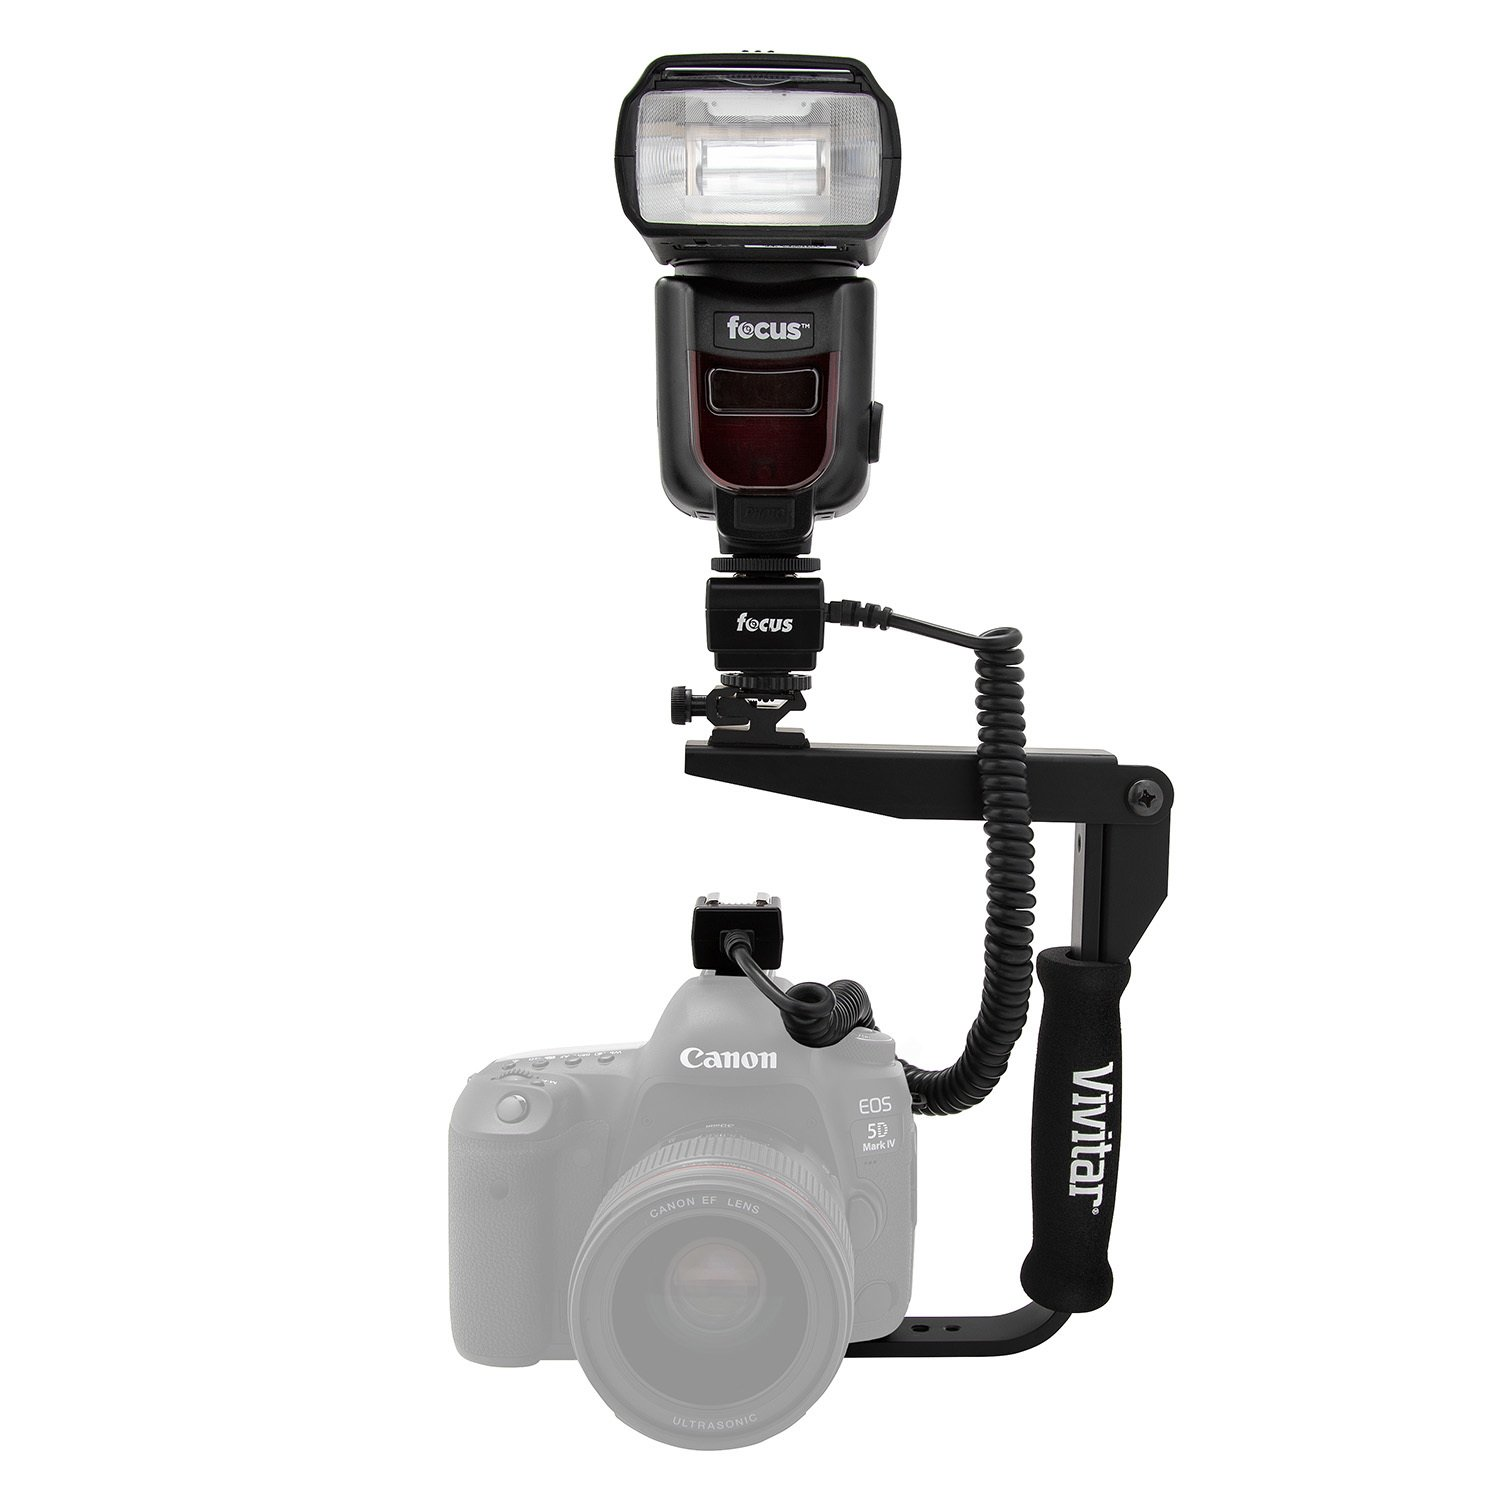 Focus Camera Professional Zoom TTL Speedlite Flash - with Built-in Transmitter/Receiver for Canon and Nikon DSLR Cameras + Off Camera Shoe Cord, Flash Bracket and Battery Charger Bundle